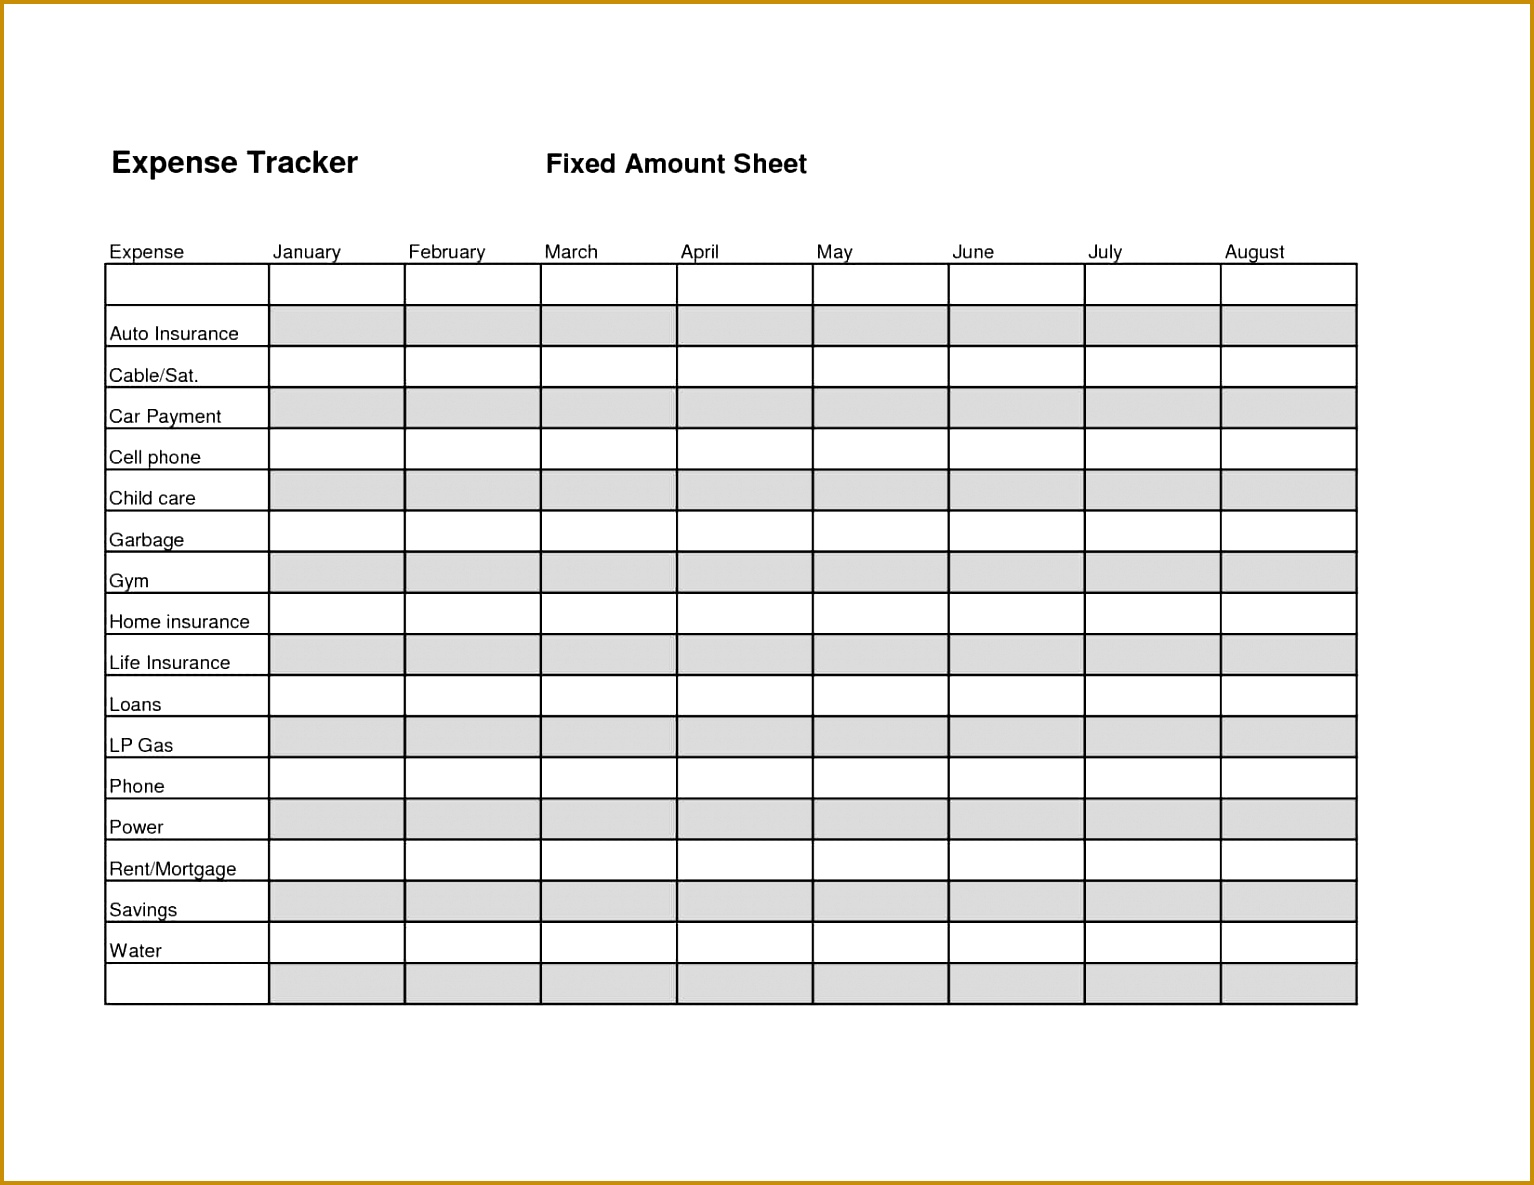 Daily fice Expense Excel Sheet And Daily Expense Tracker Excel Free 11851534